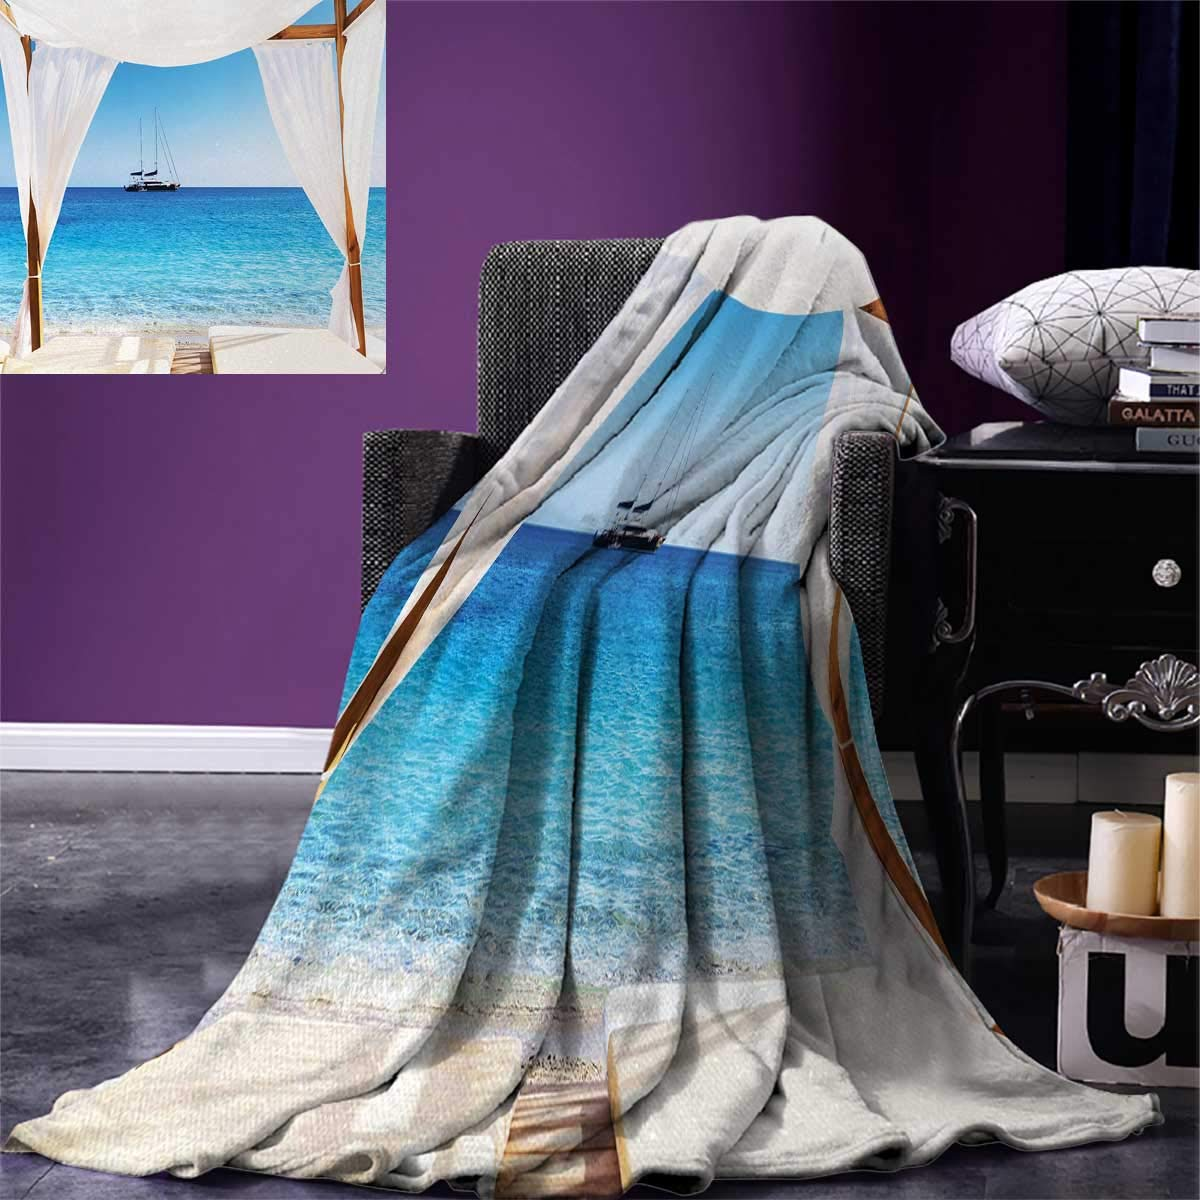 Balinese Digital Printing Blanket Beach Through Balinese Bed Summer Sunshine Clear Sky Honeymoon Natural Spa Picture Summer Quilt Comforter 80''x60'' Blue White